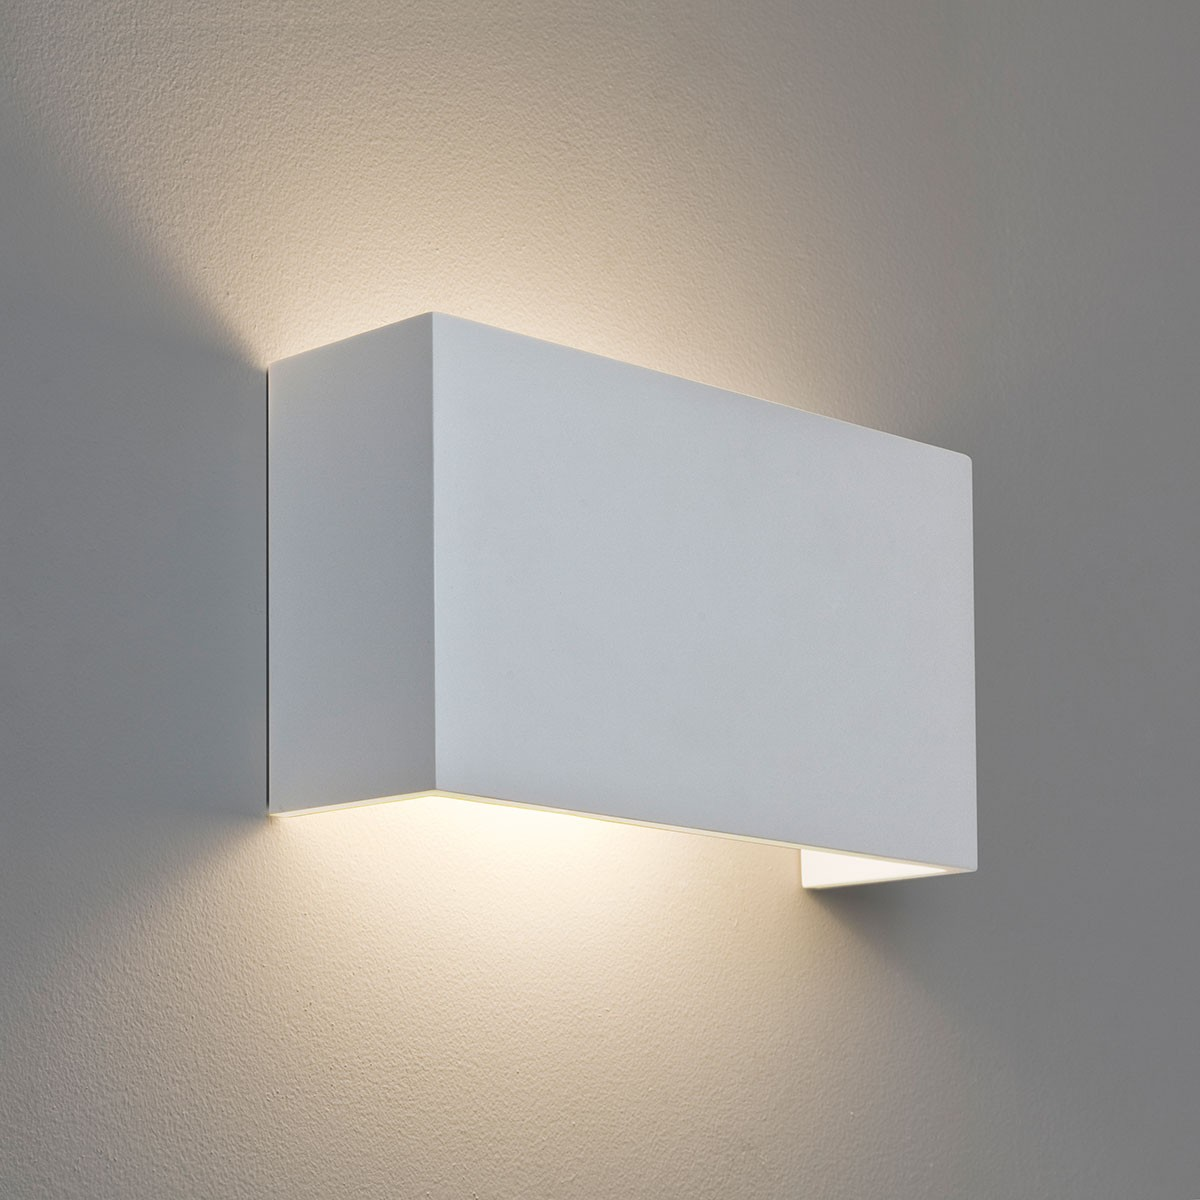 Wall Plaster Products : Astro pella plaster wall light at uk electrical supplies